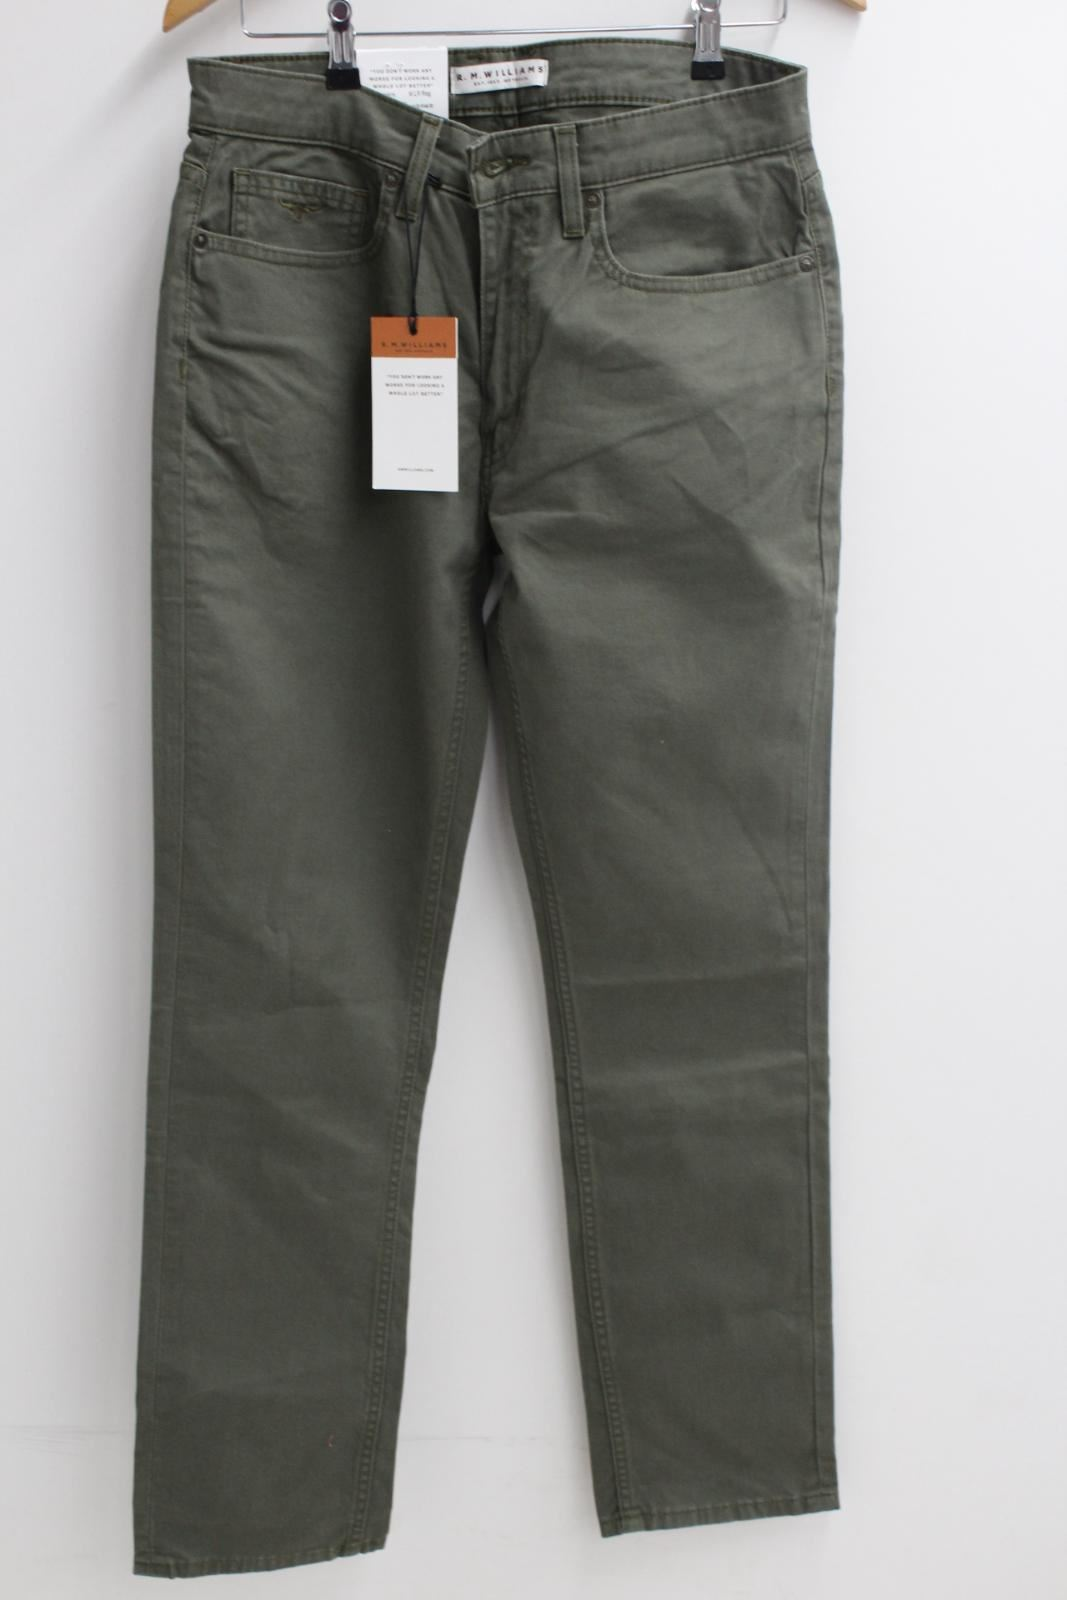 BNWT R.M. WILLIAMS Mens Ramco Regular Fit Jeans Low Tapered Leg Olive Green 40R